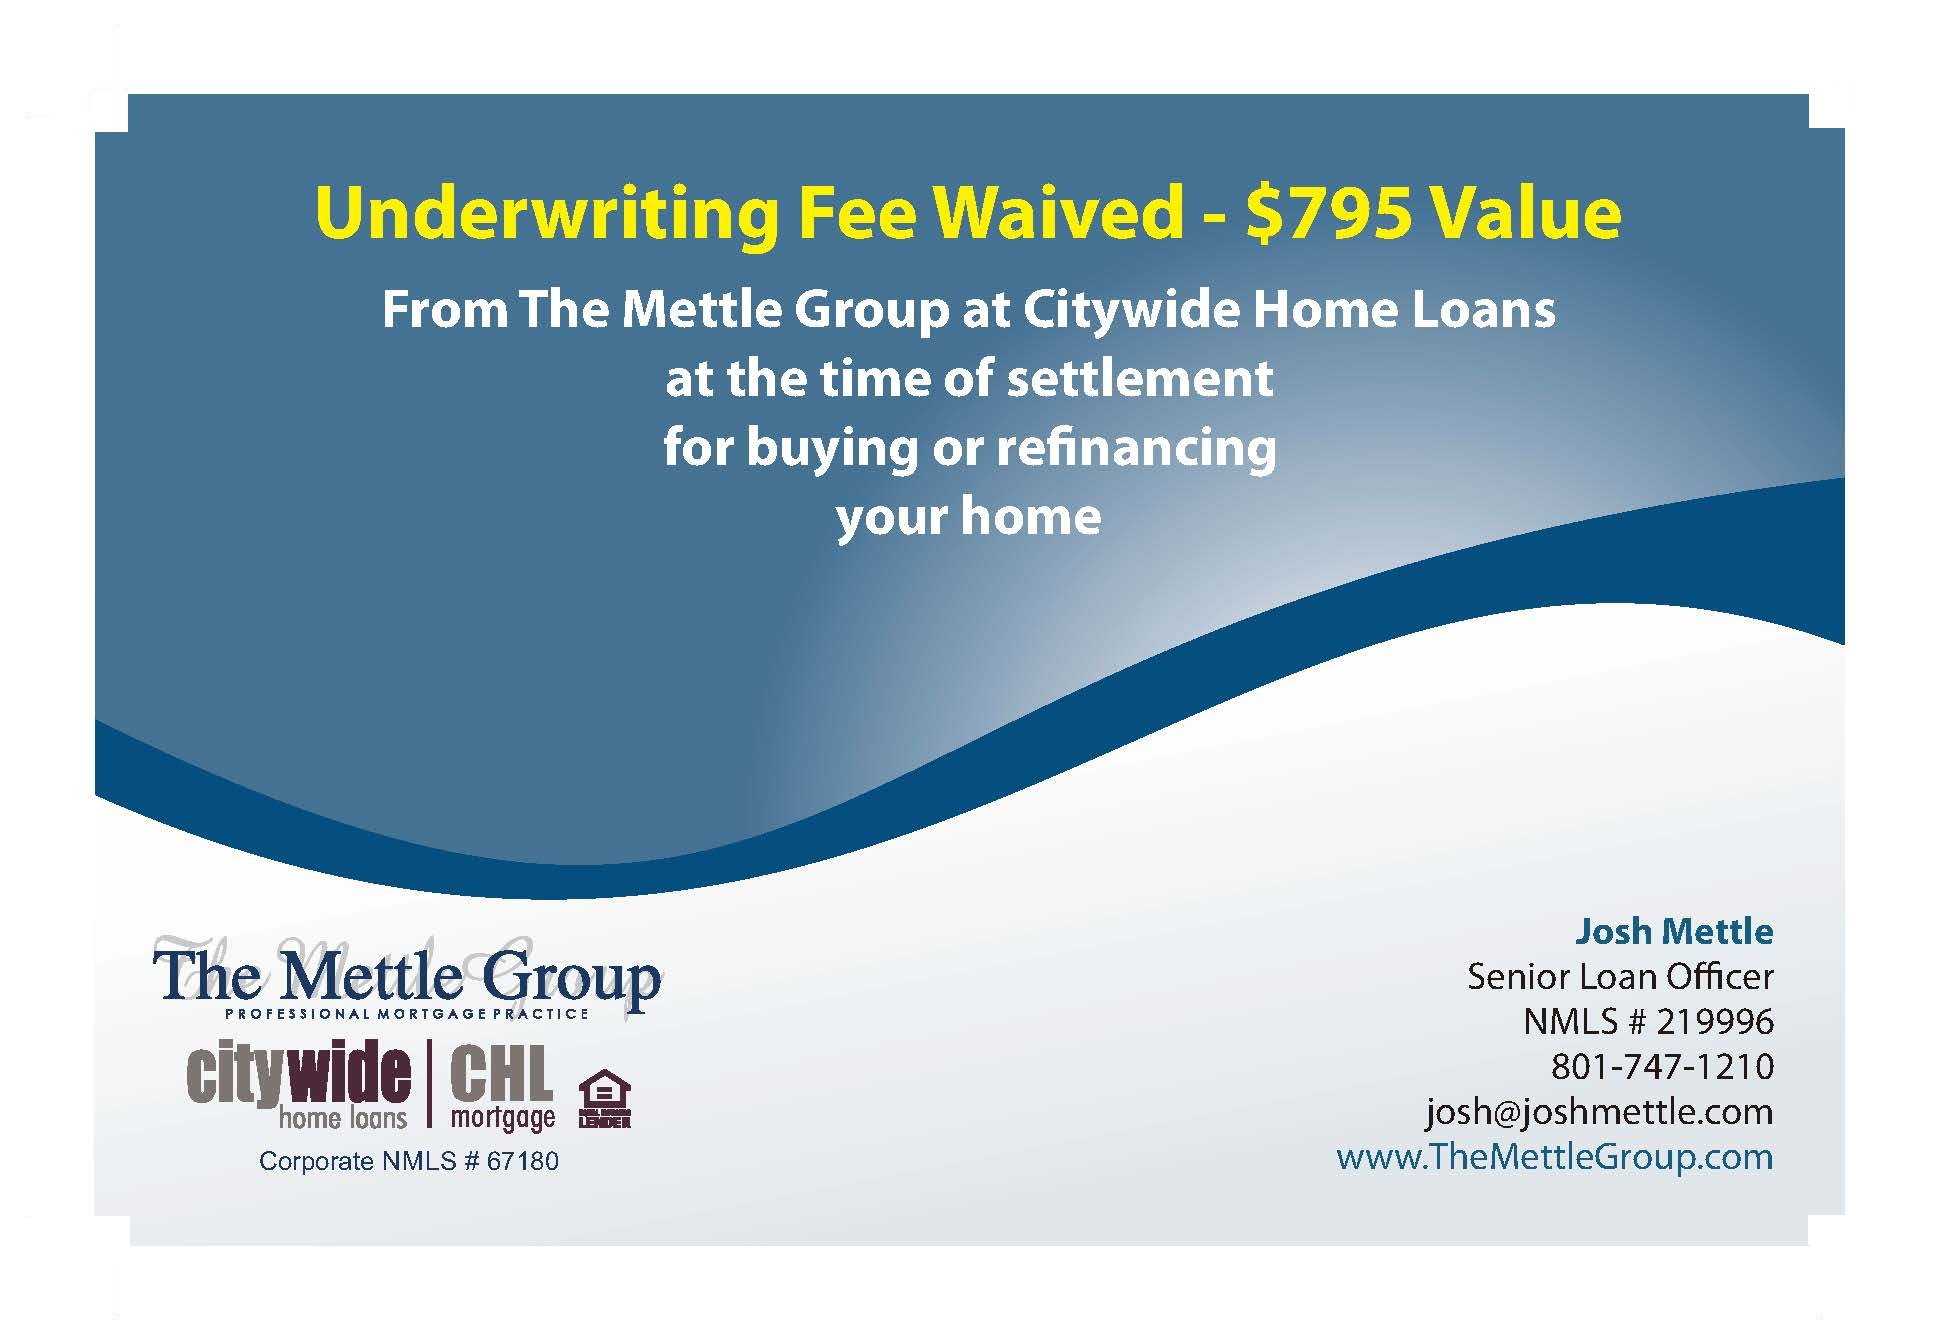 The Mettle Group at Citywide Home Loans